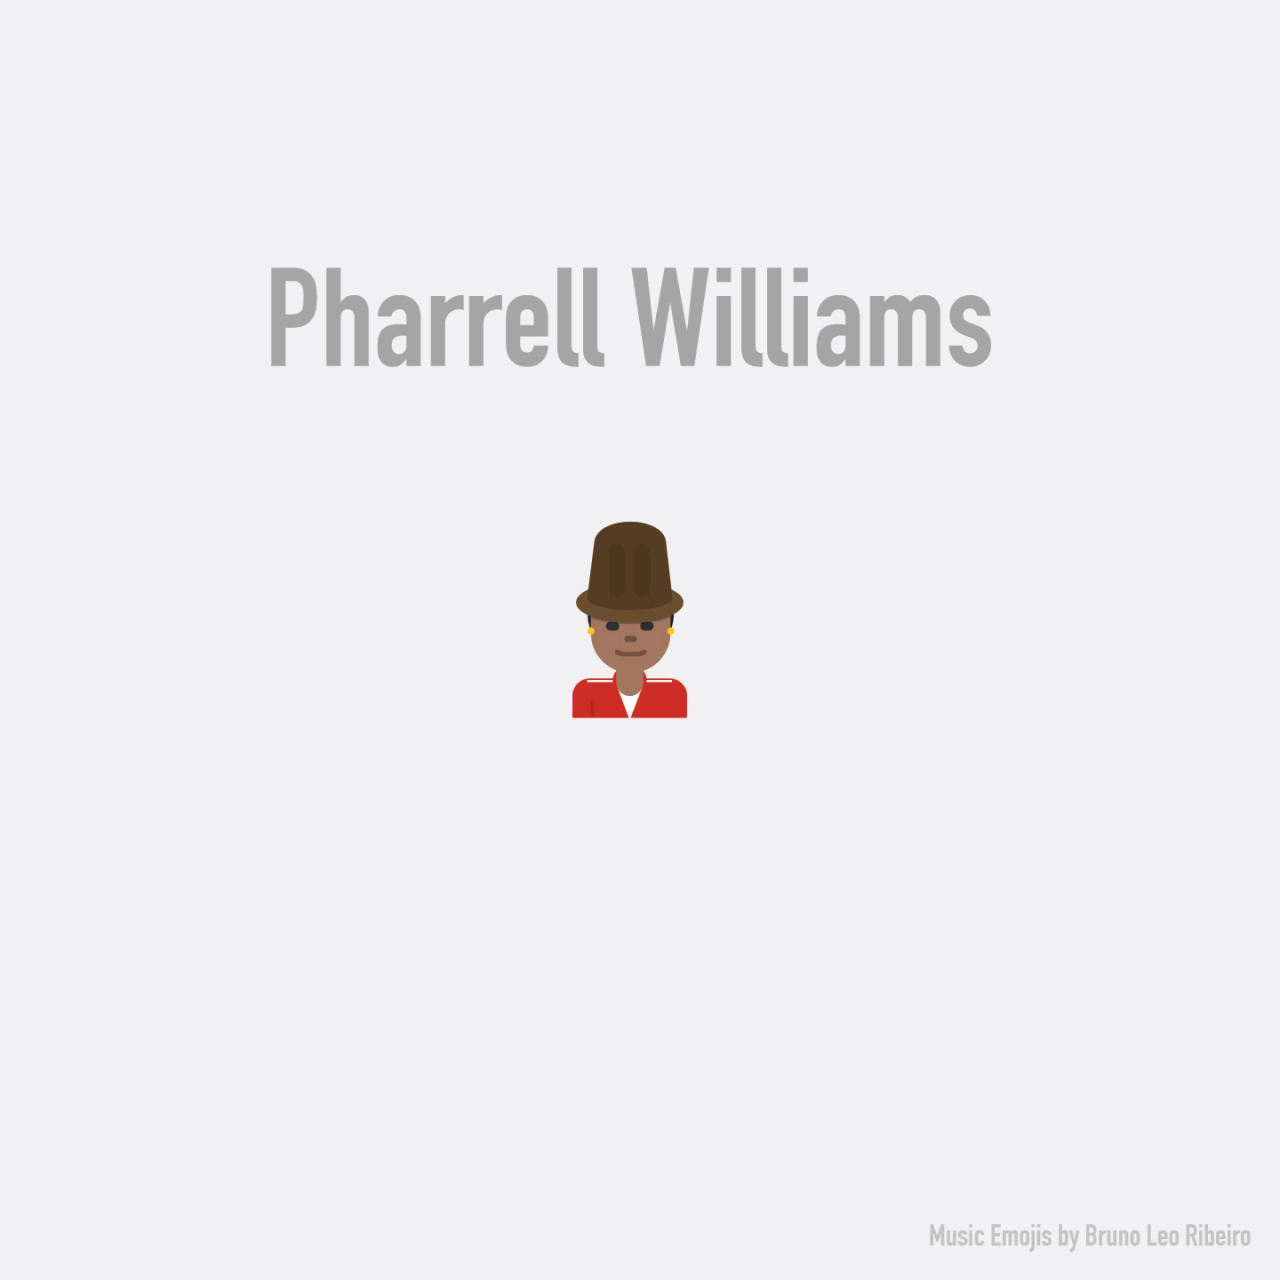 Pharrell Williams emoji